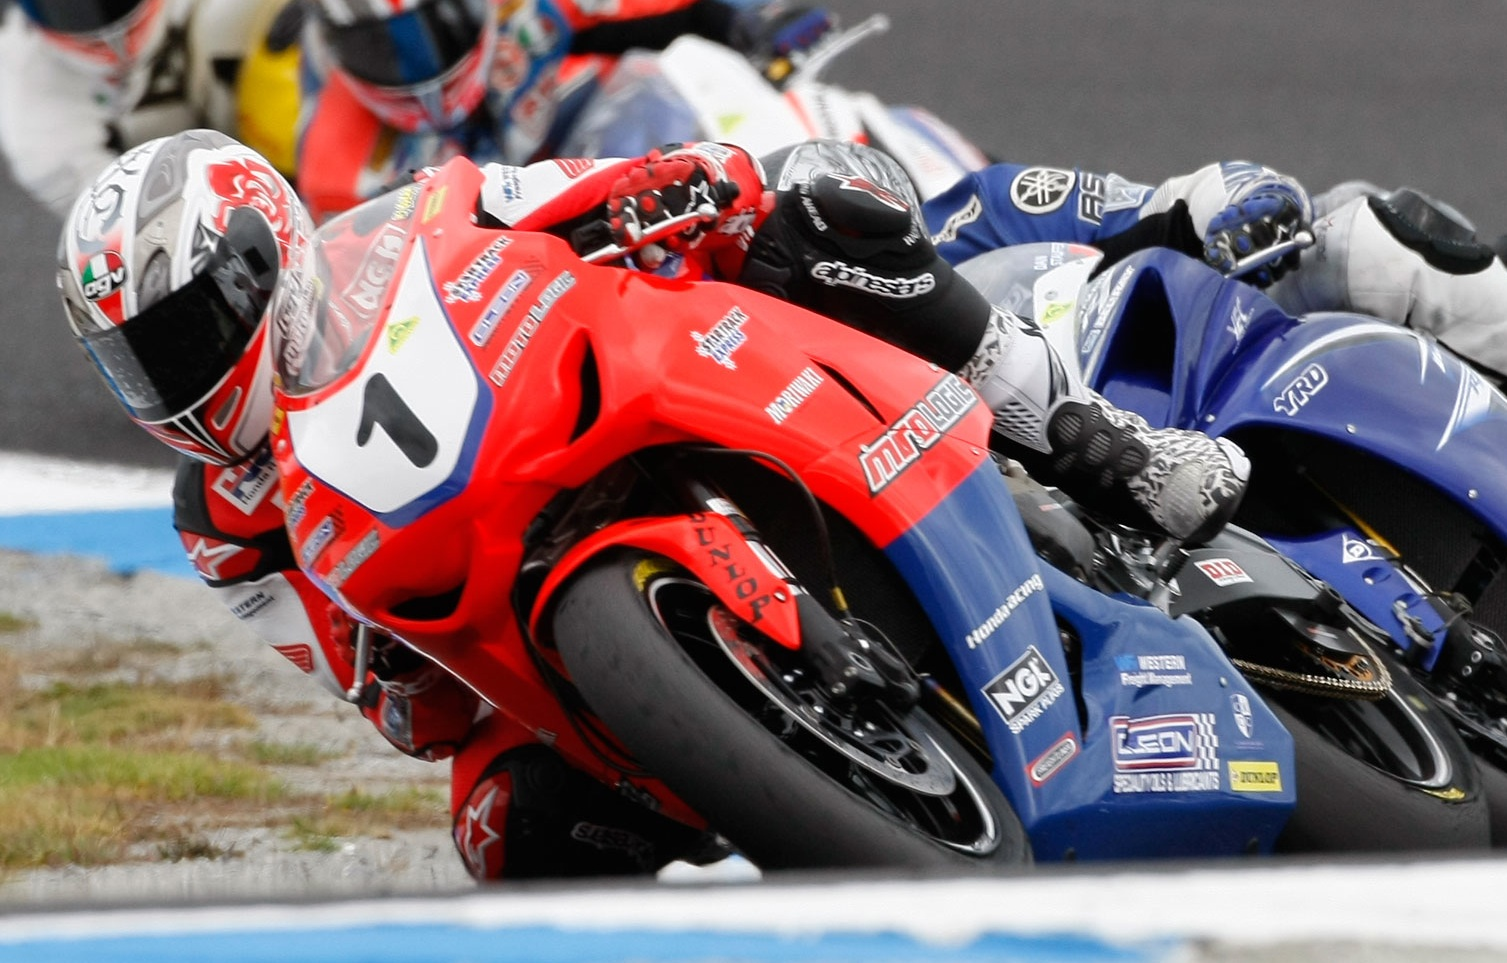 Superbikes and Supercars look at four